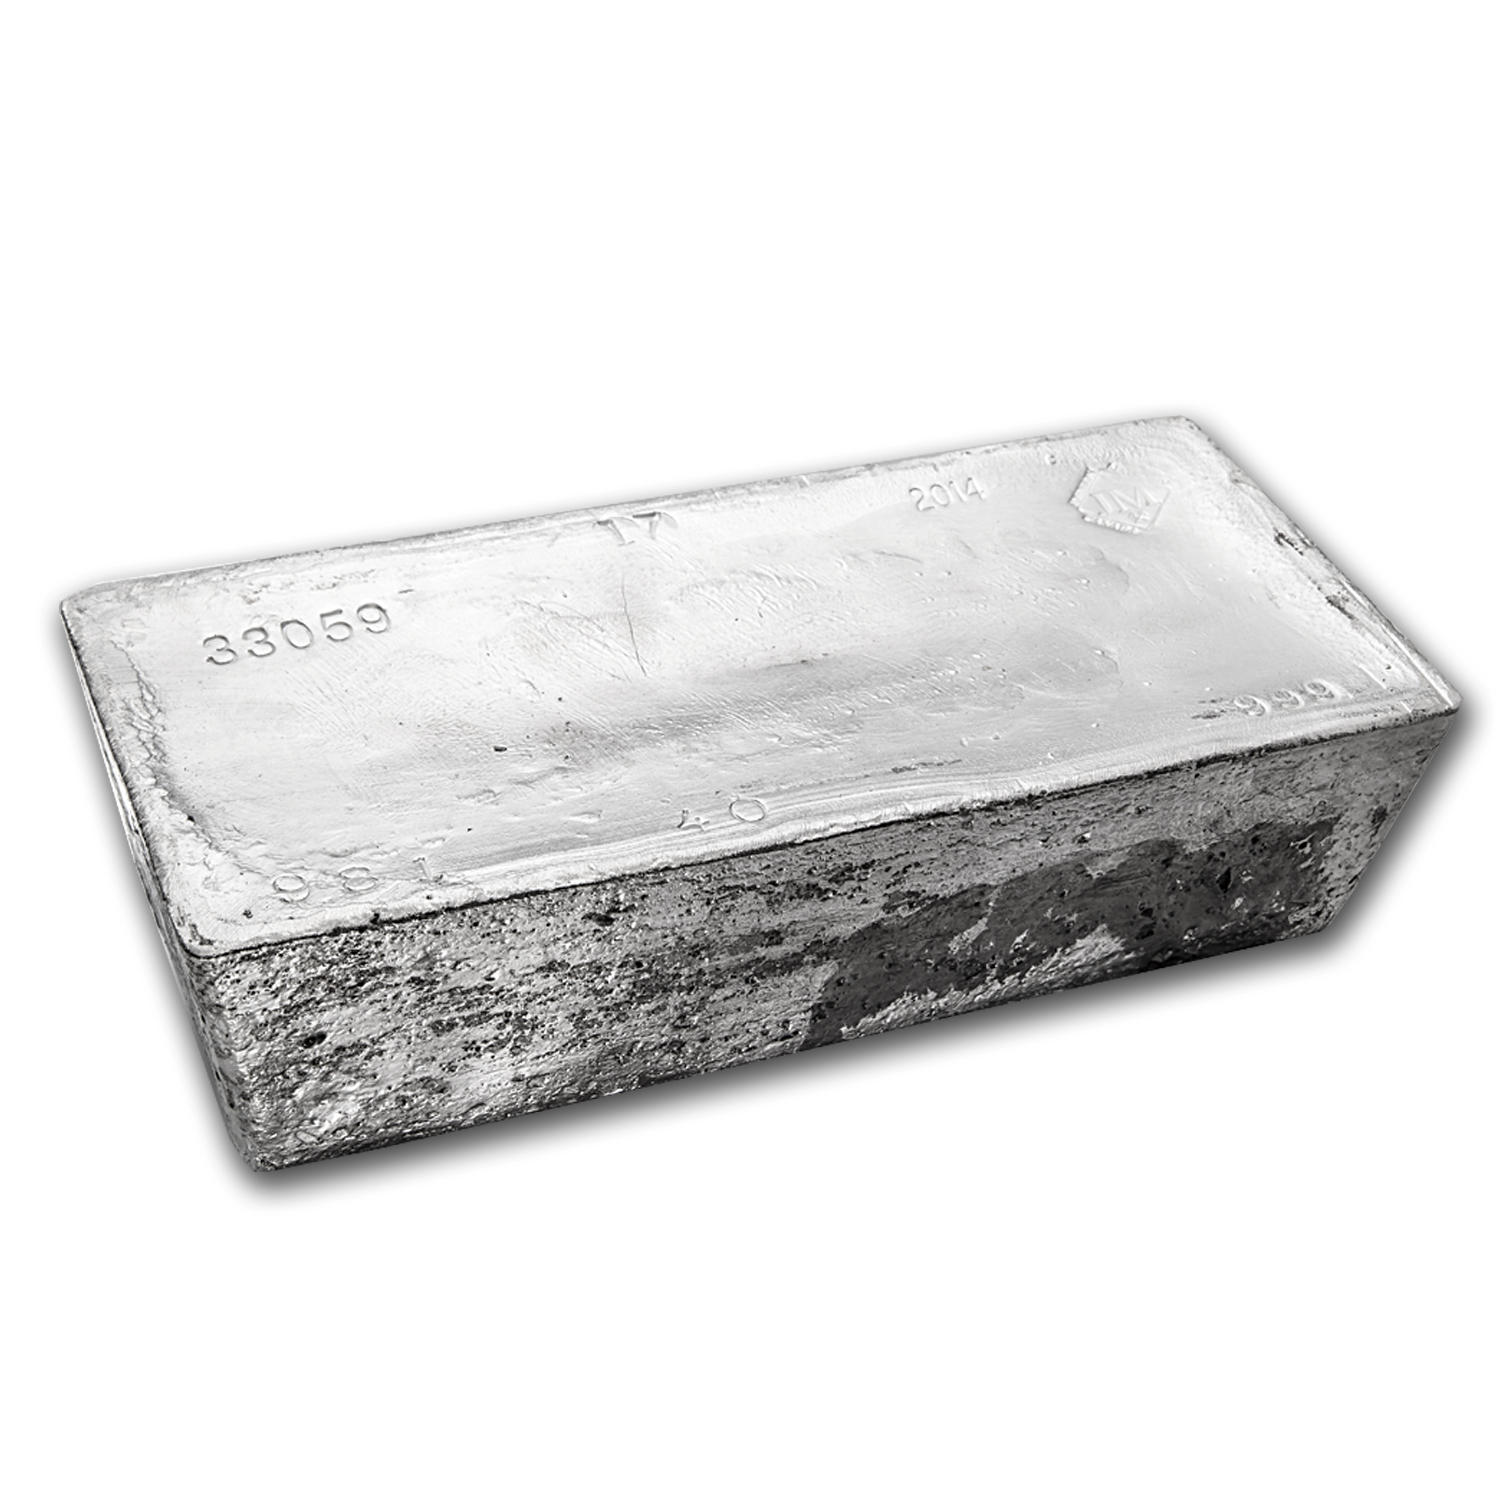 967.7 oz Silver Bar - Johnson Matthey (#3796402)